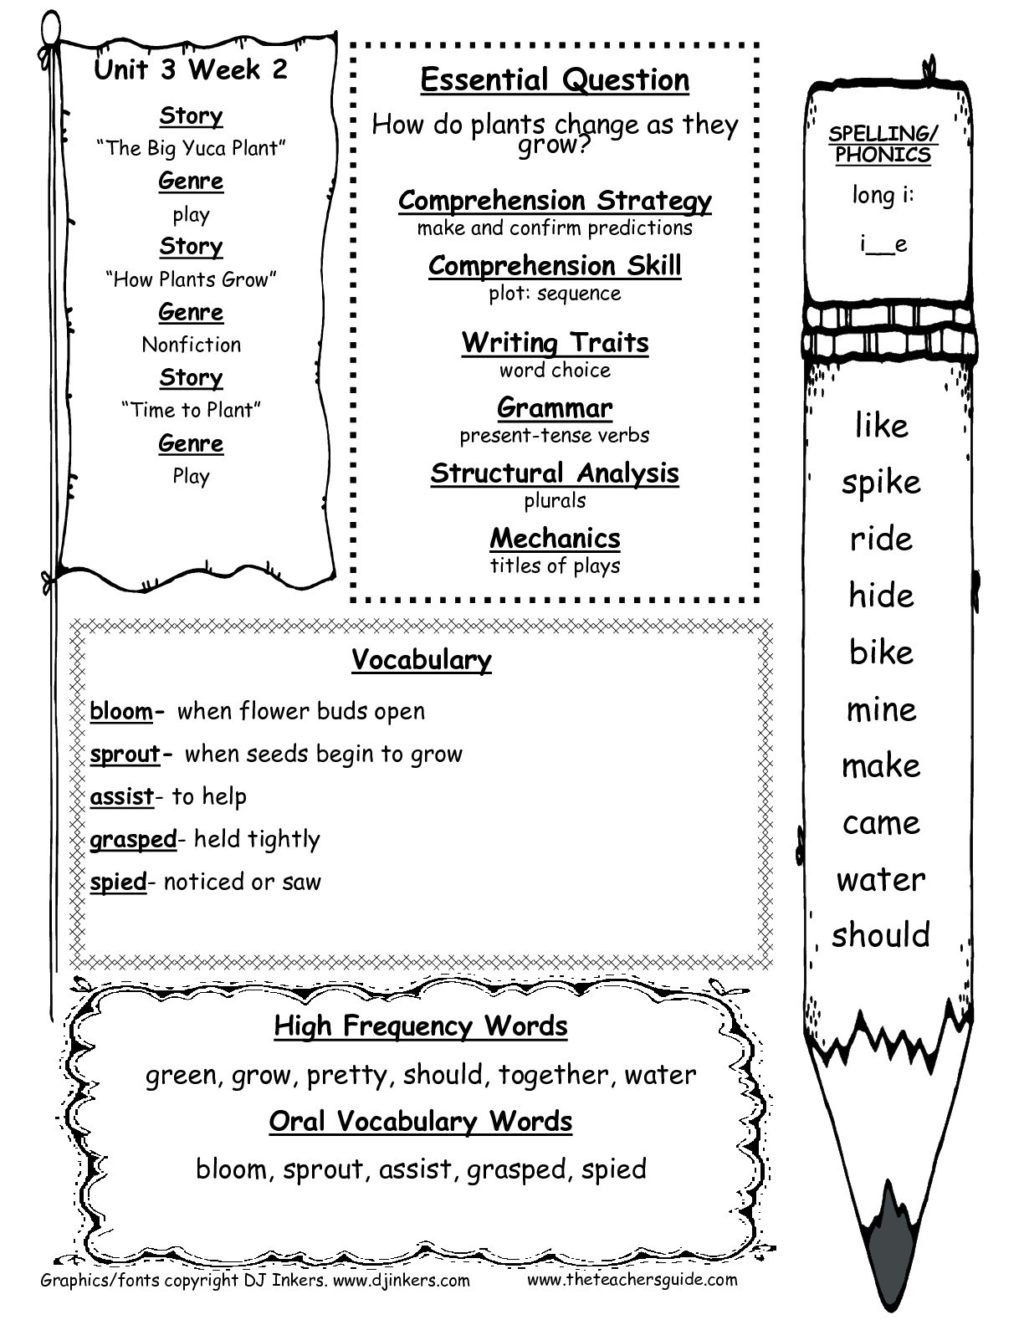 Sequencing Worksheets for 1st Grade Worksheet Spellingords for 1st Grade Image Ideasorksheets